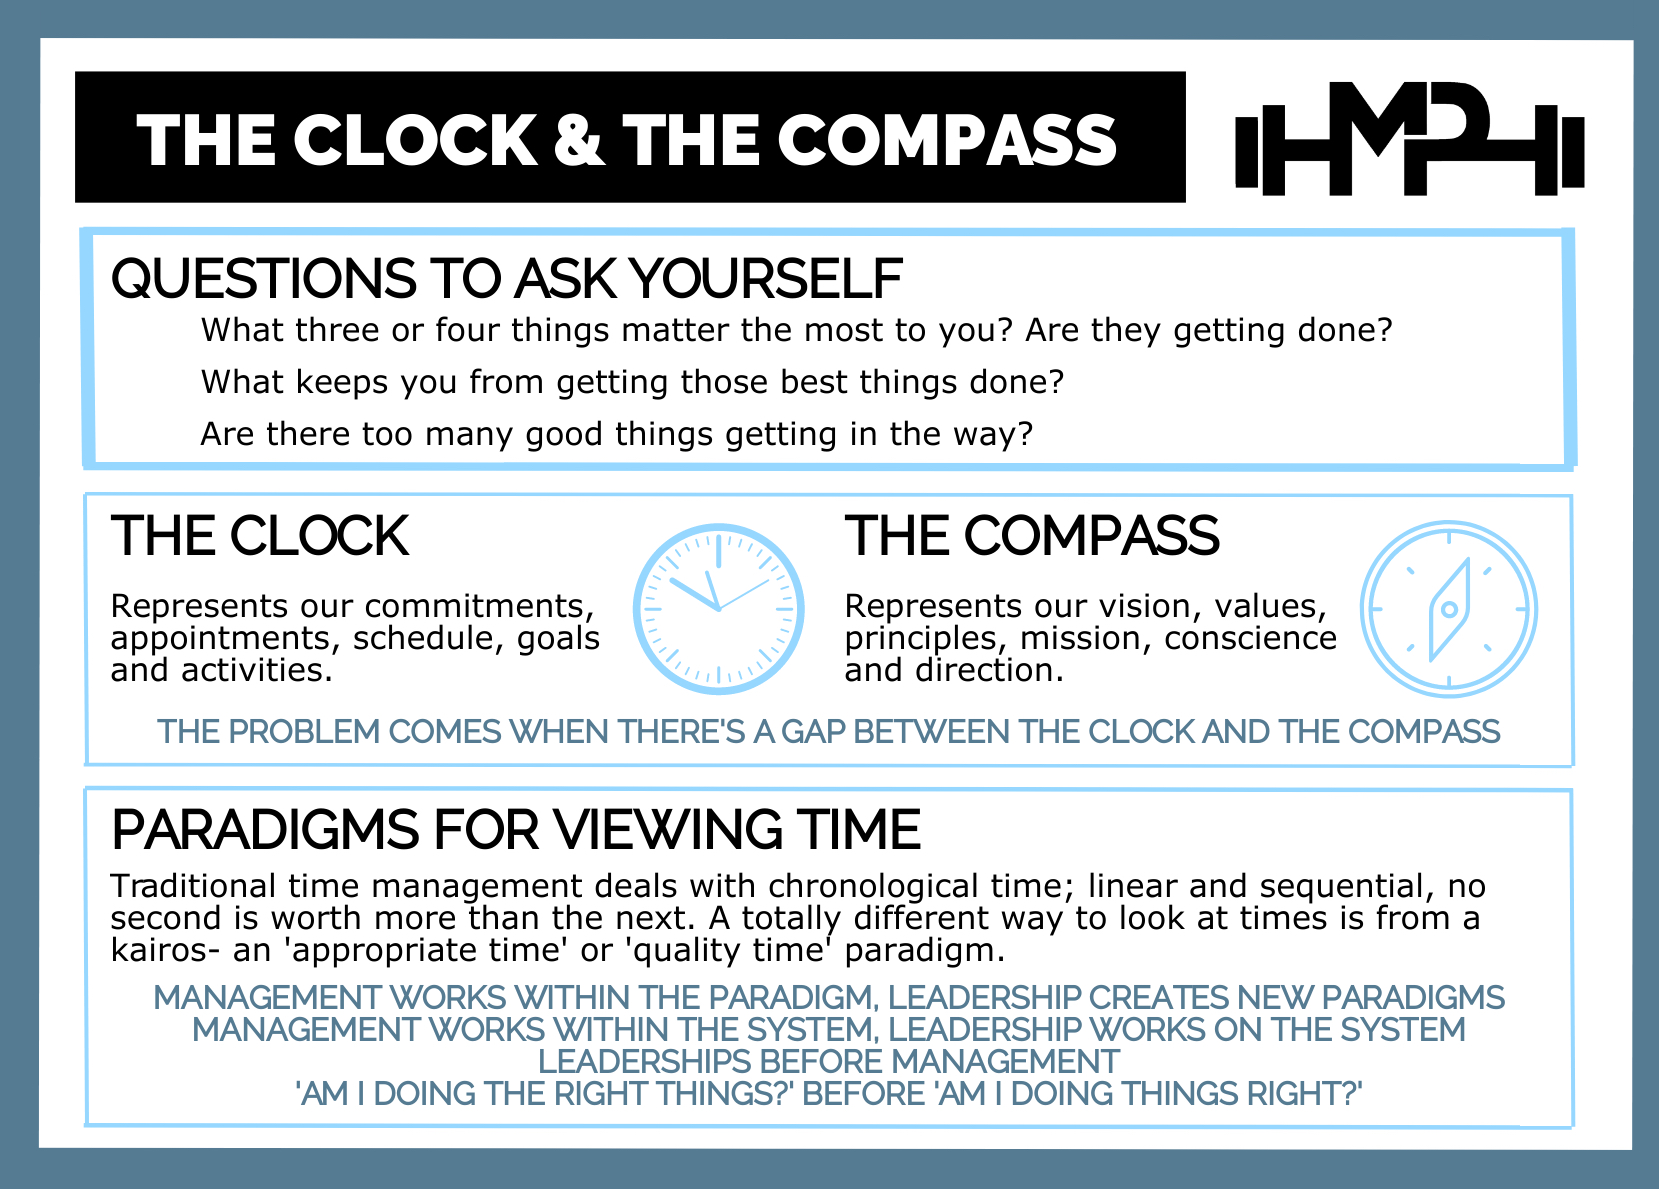 clock and the compass new font.jpg